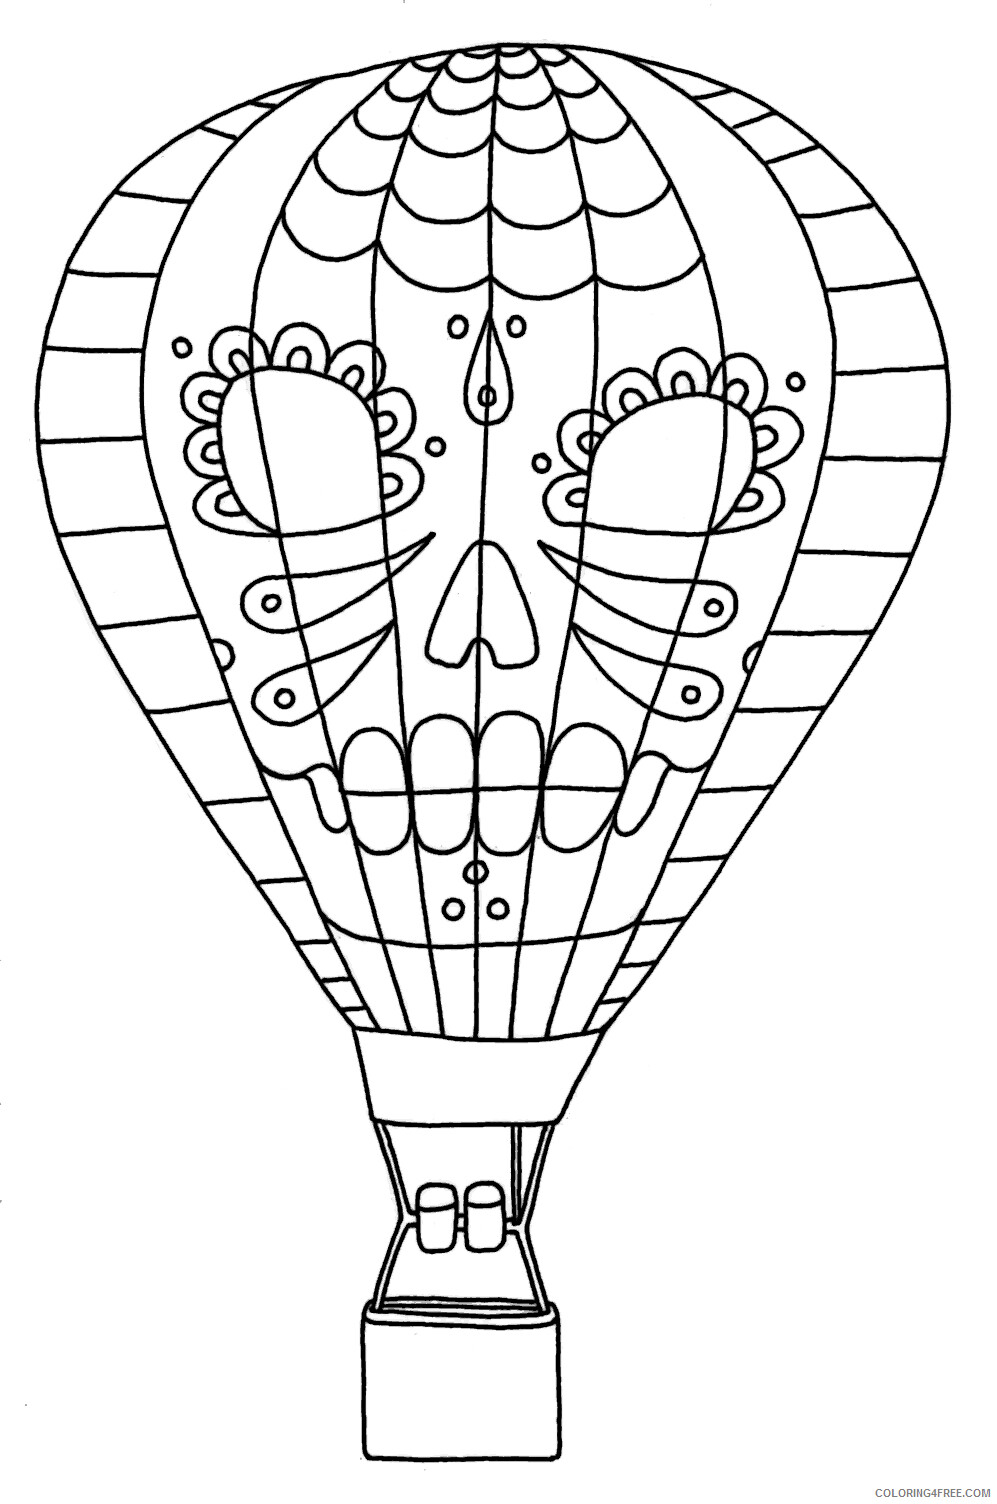 Hot Air Balloon Coloring Pages for Kids Hot Air Balloon Printable 2021 337 Coloring4free